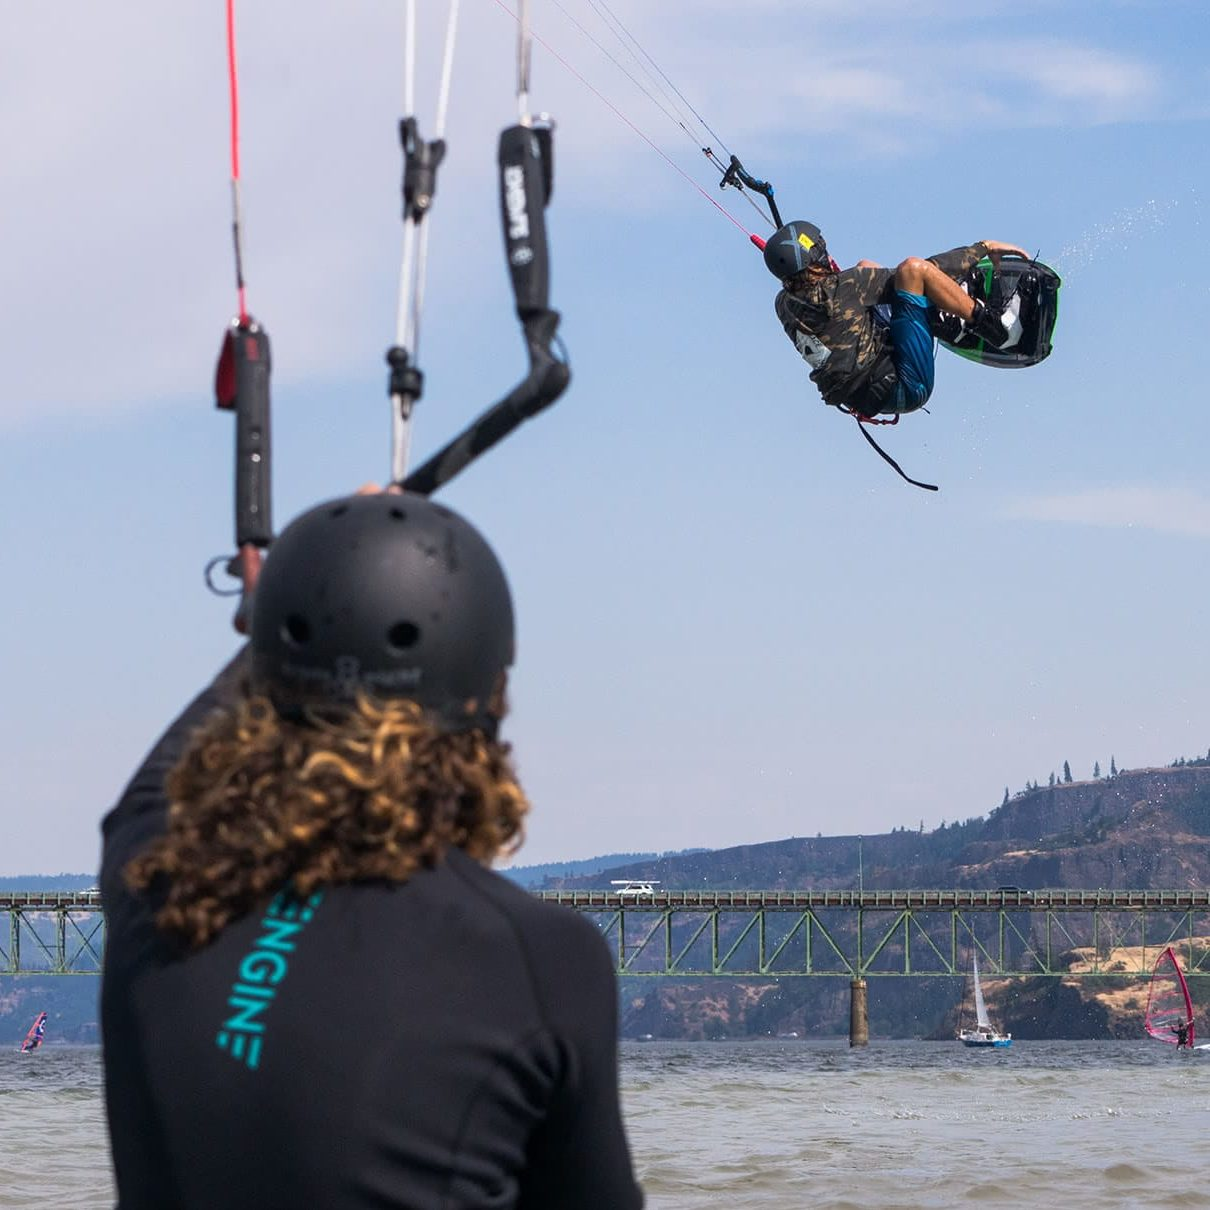 A young Kiteboarder competing in the Hood River Junior Jams competition